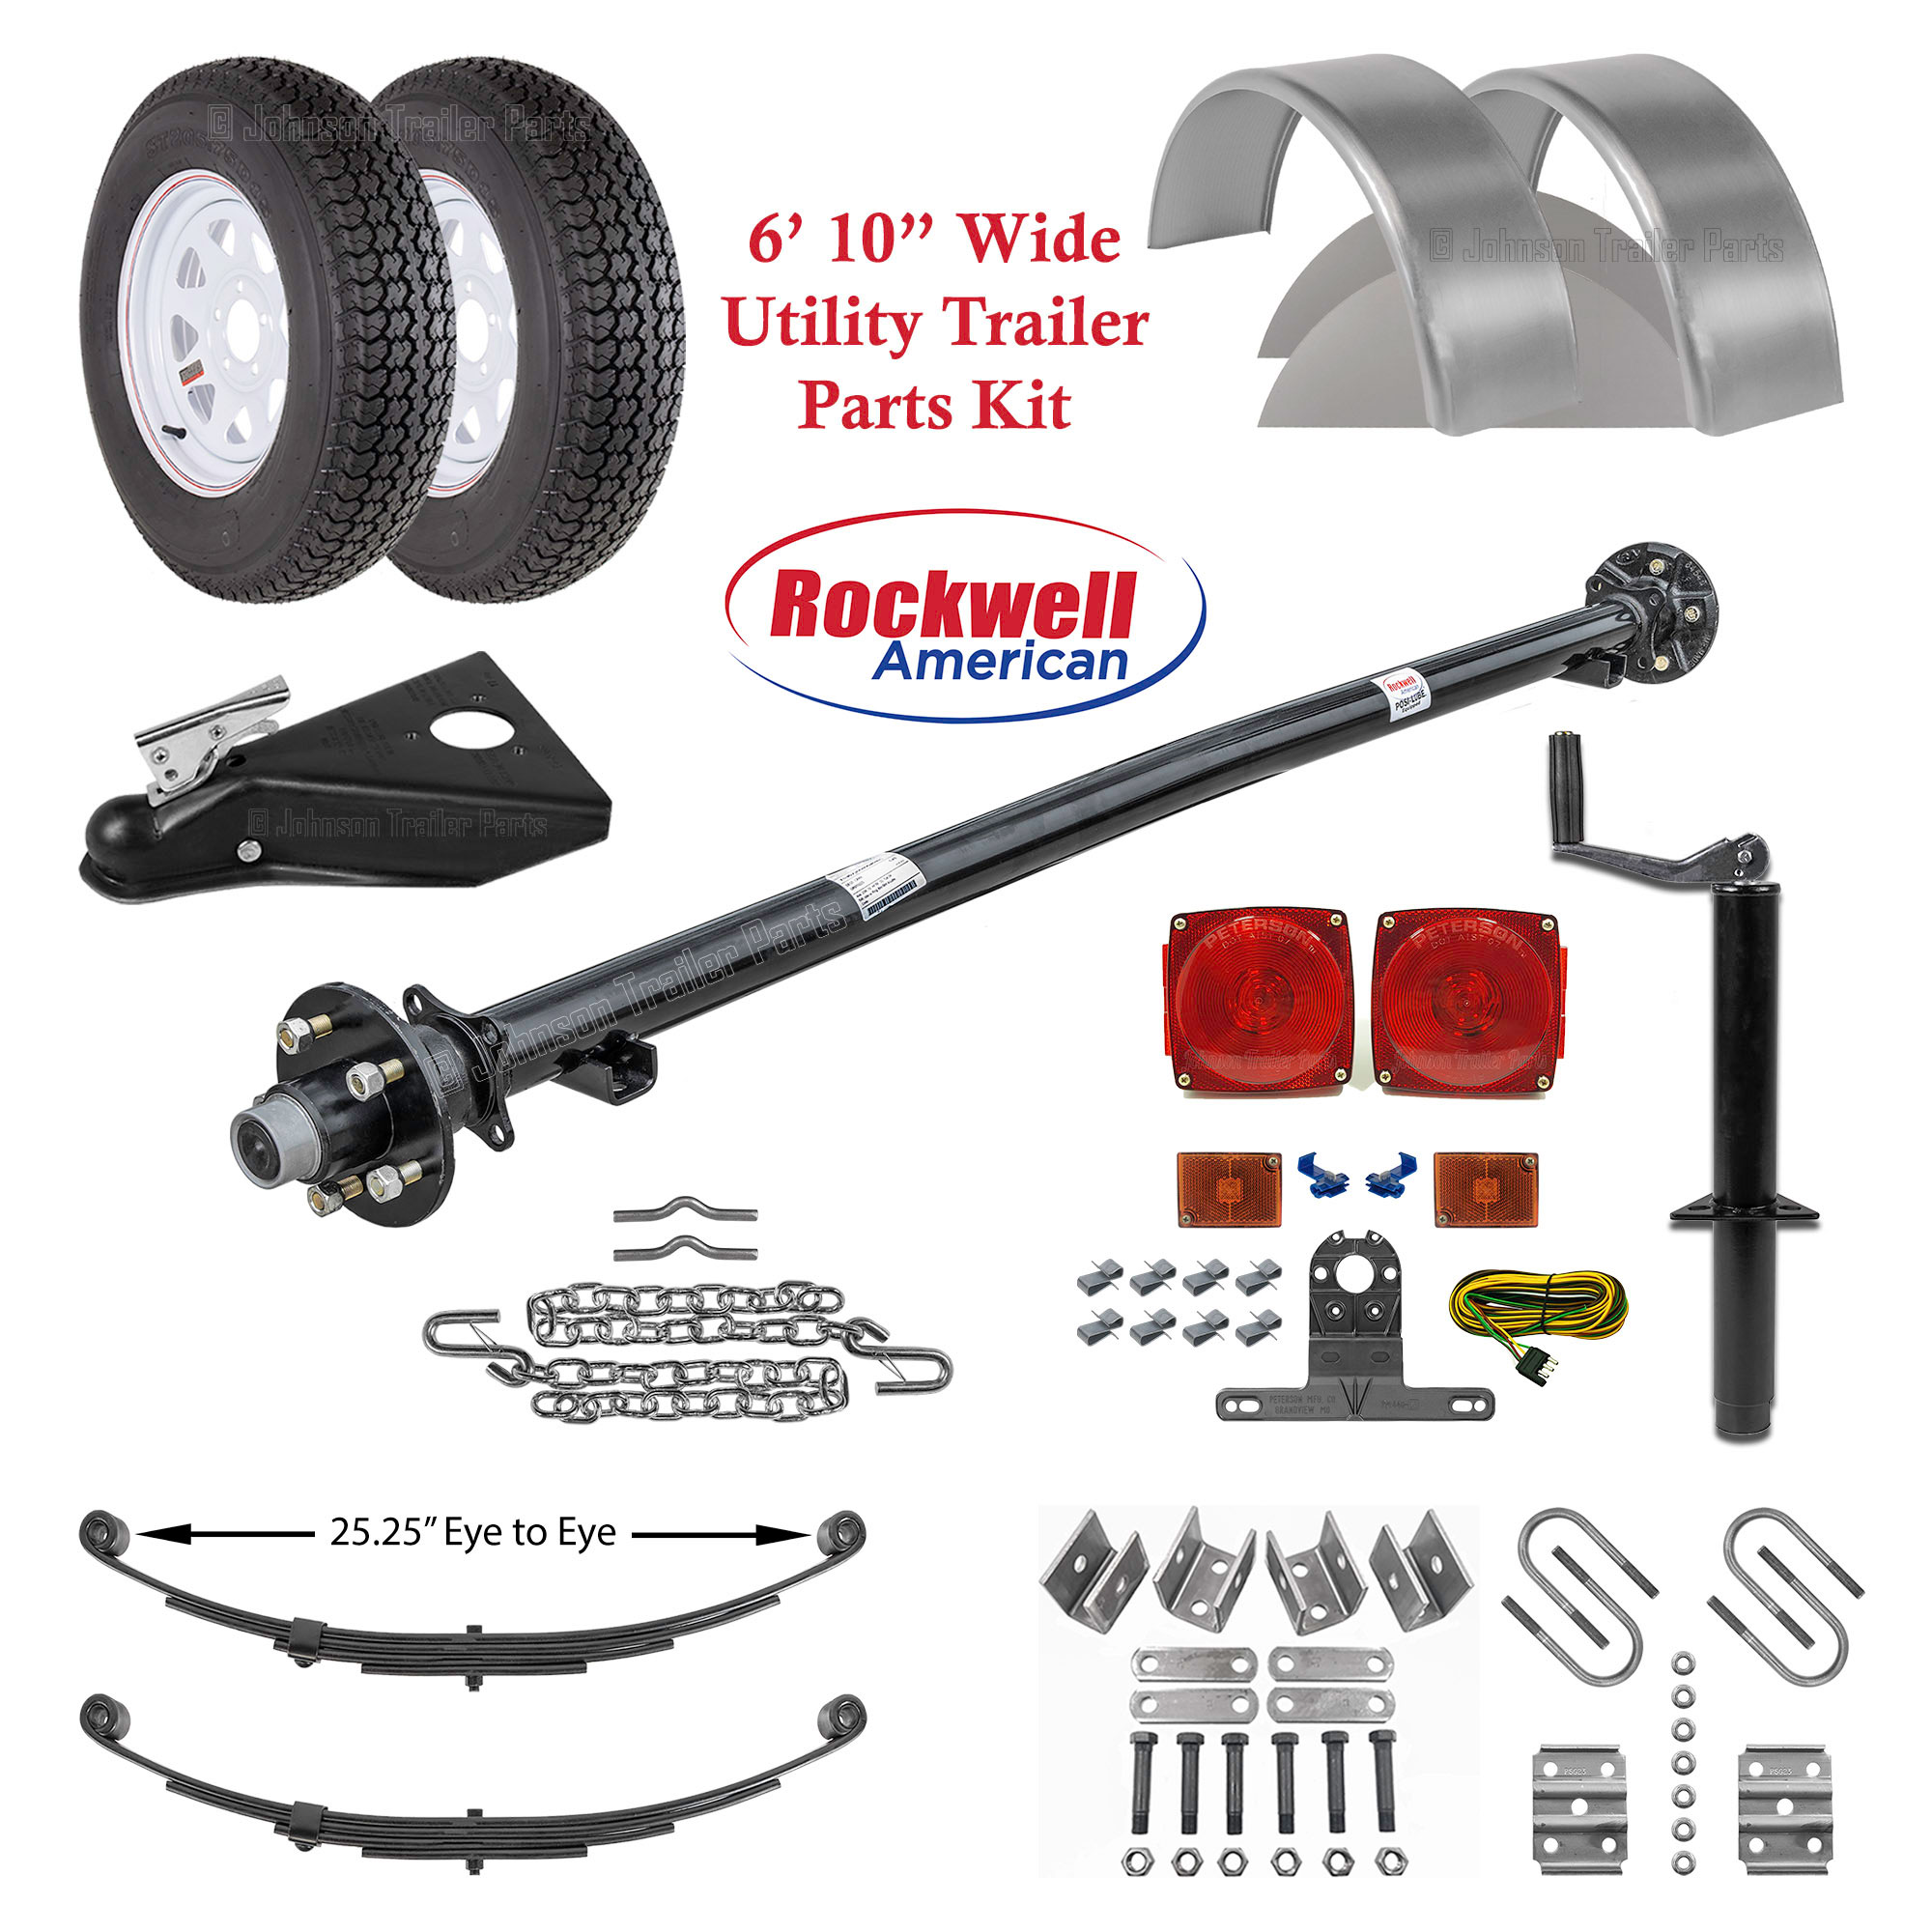 6ft 10in Utility Trailer Parts Kit – 3,500 lb Capacity